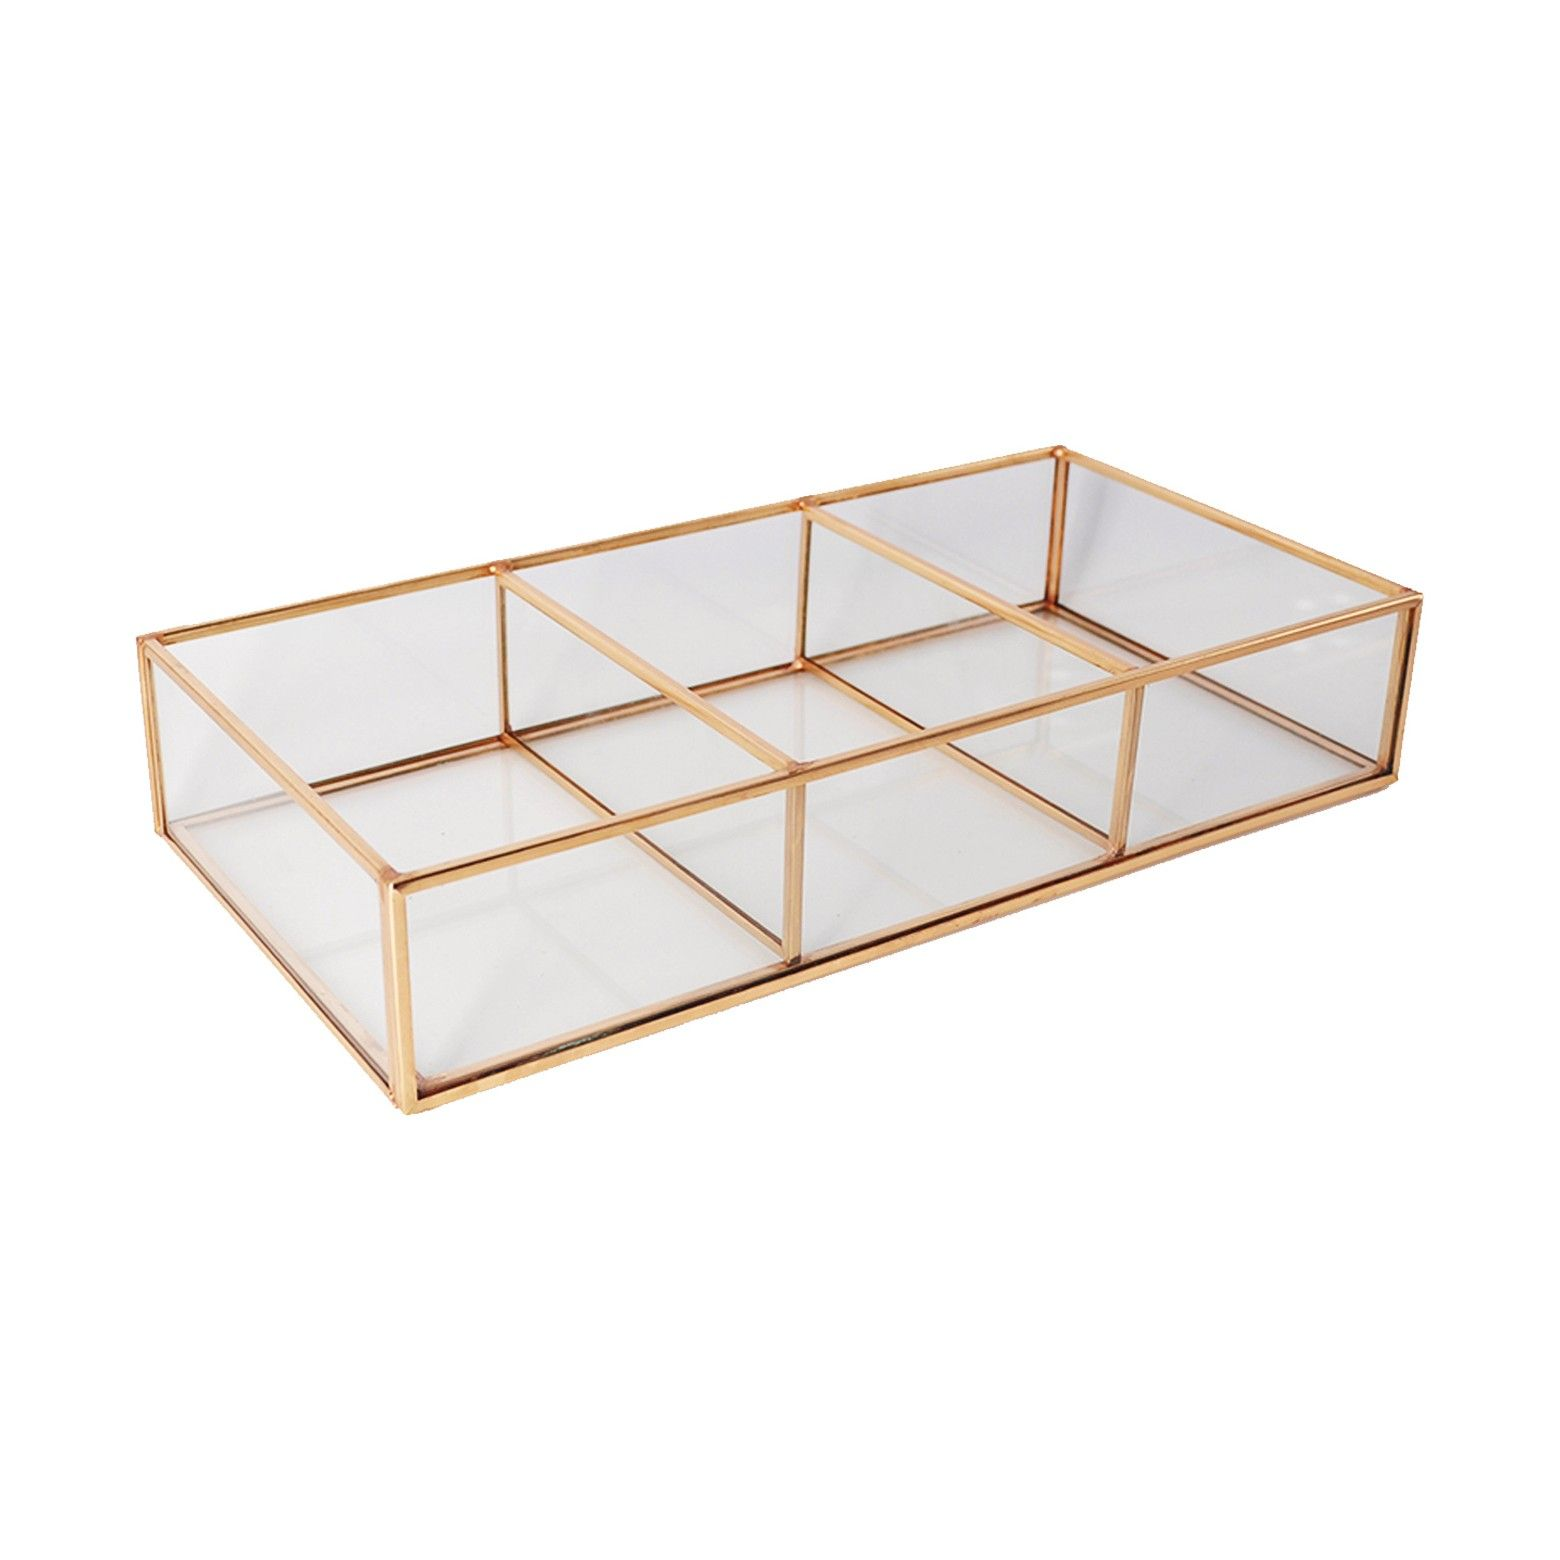 Glass and metal compartment vanity tray threshold projects to